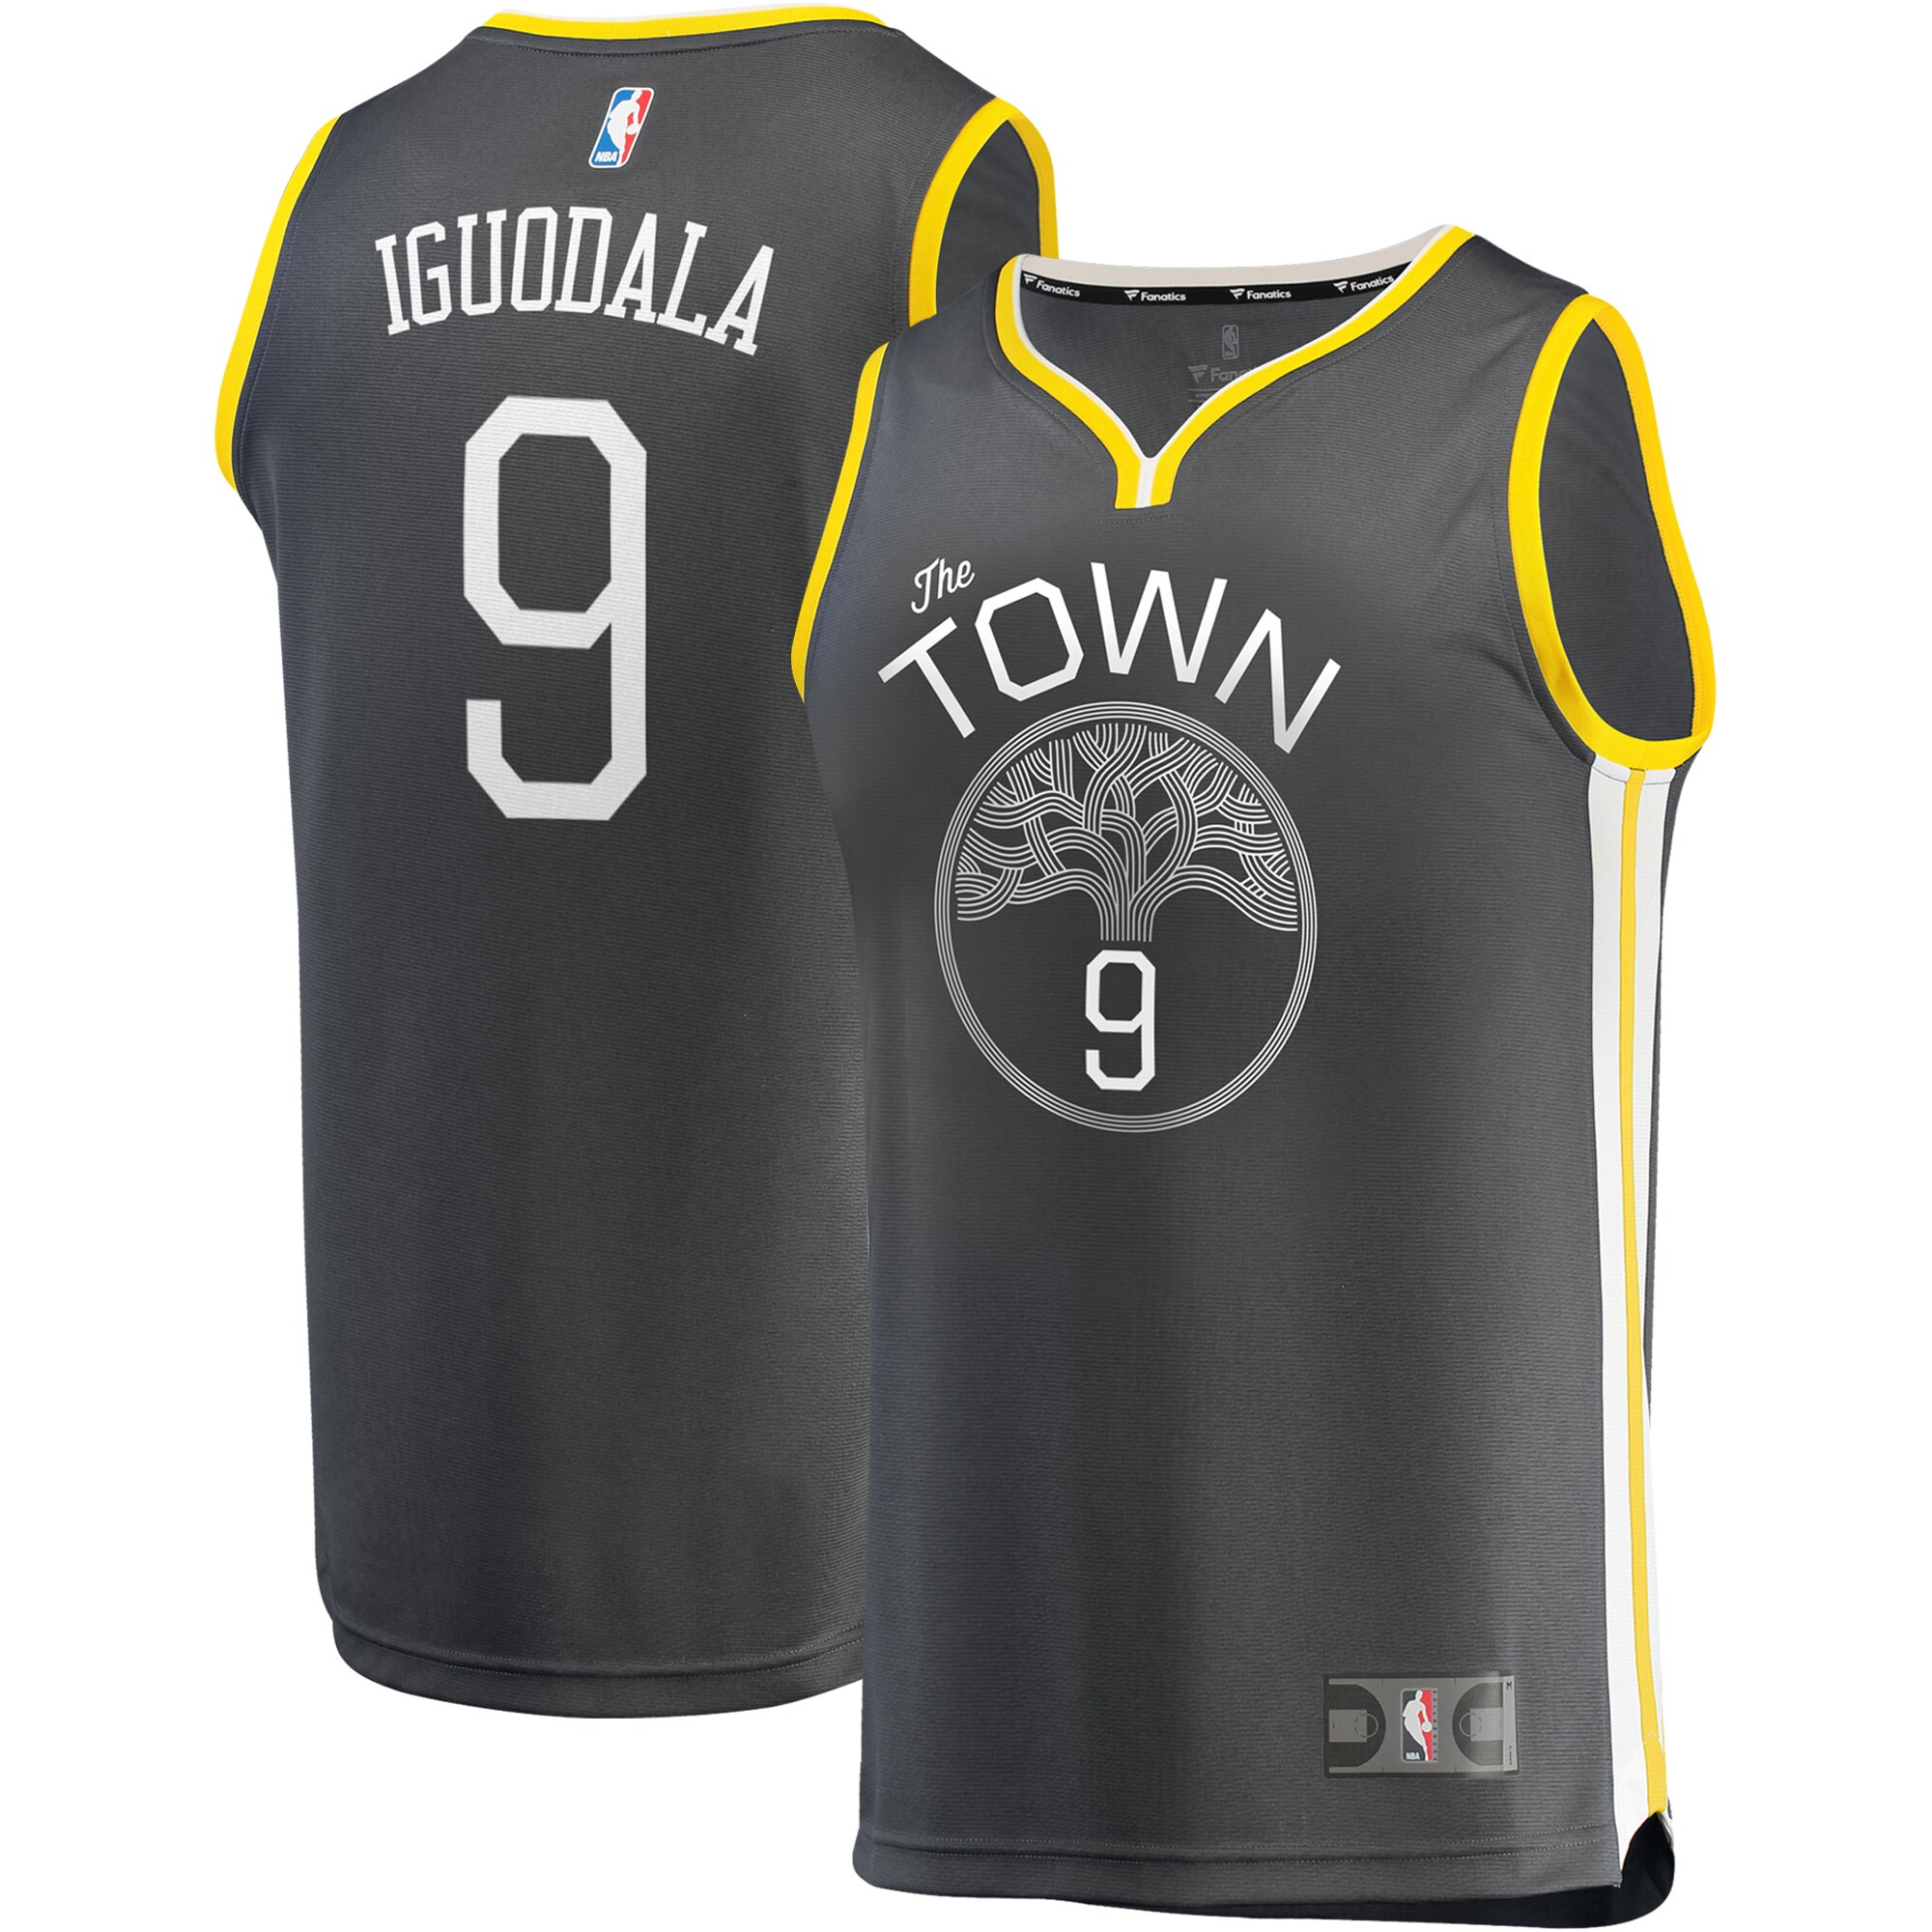 Andre Iguodala Golden State Warriors Fanatics Branded Fast Break Replica Player Jersey Charcoal - Statement Edition